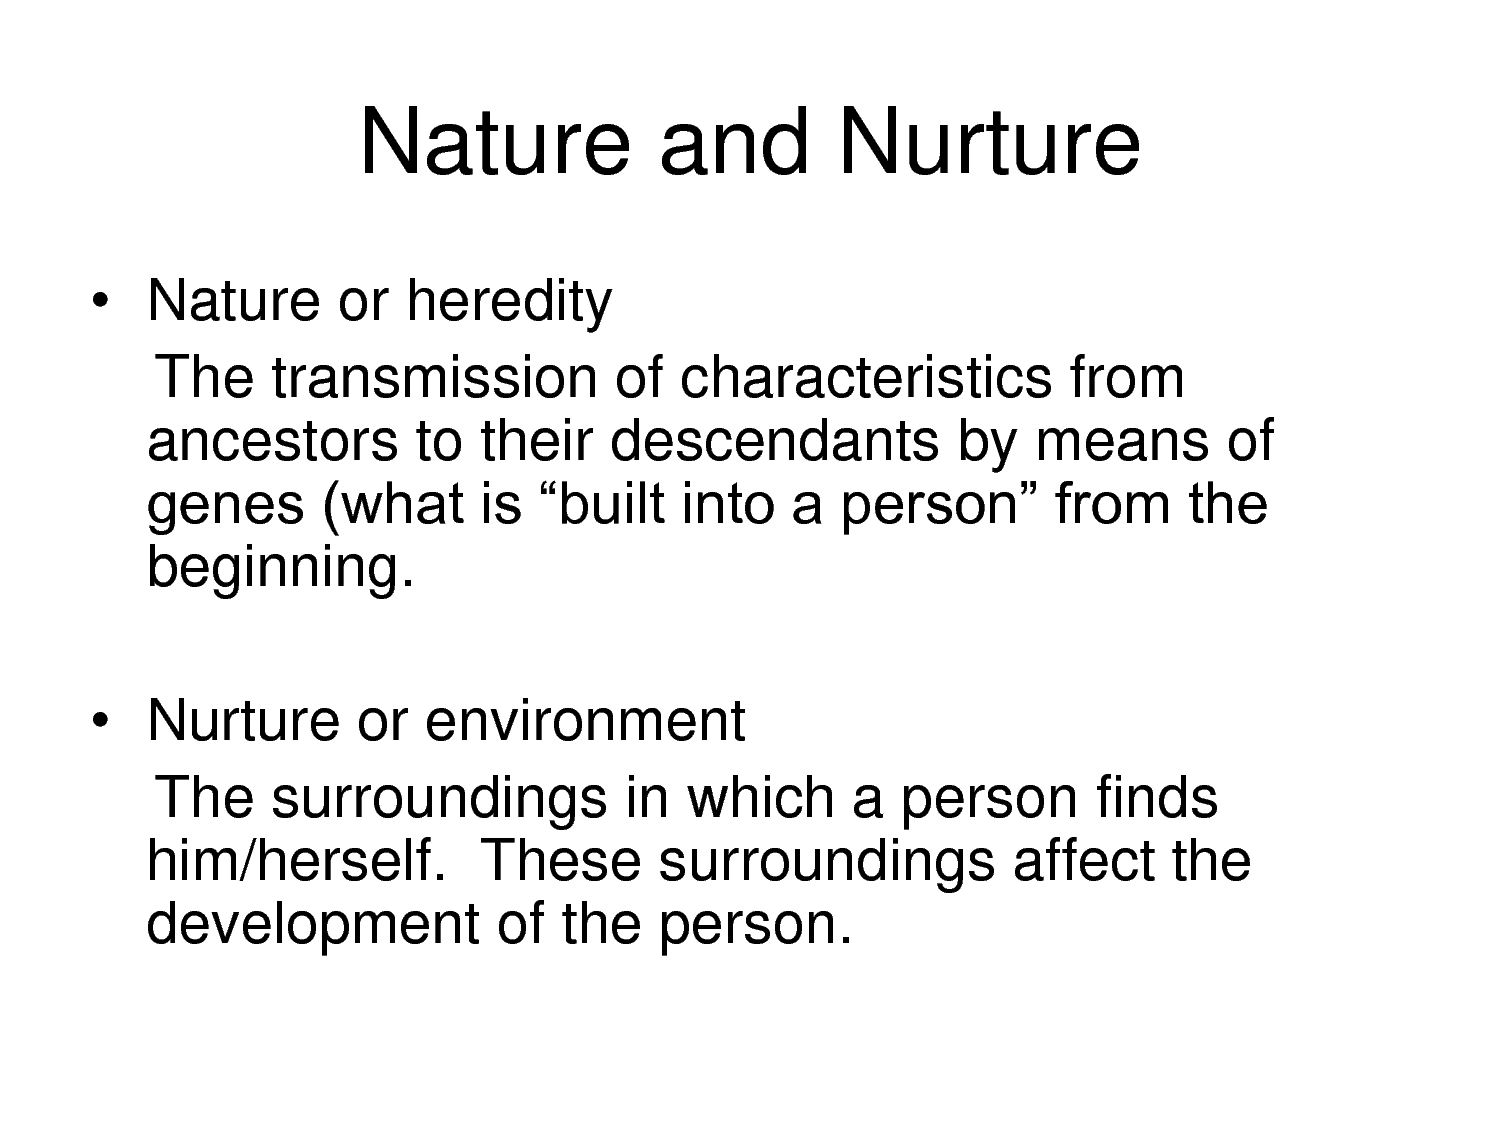 essay on nature nurture controversy Essays - largest database of quality sample essays and research papers on nature vs nurture essay.